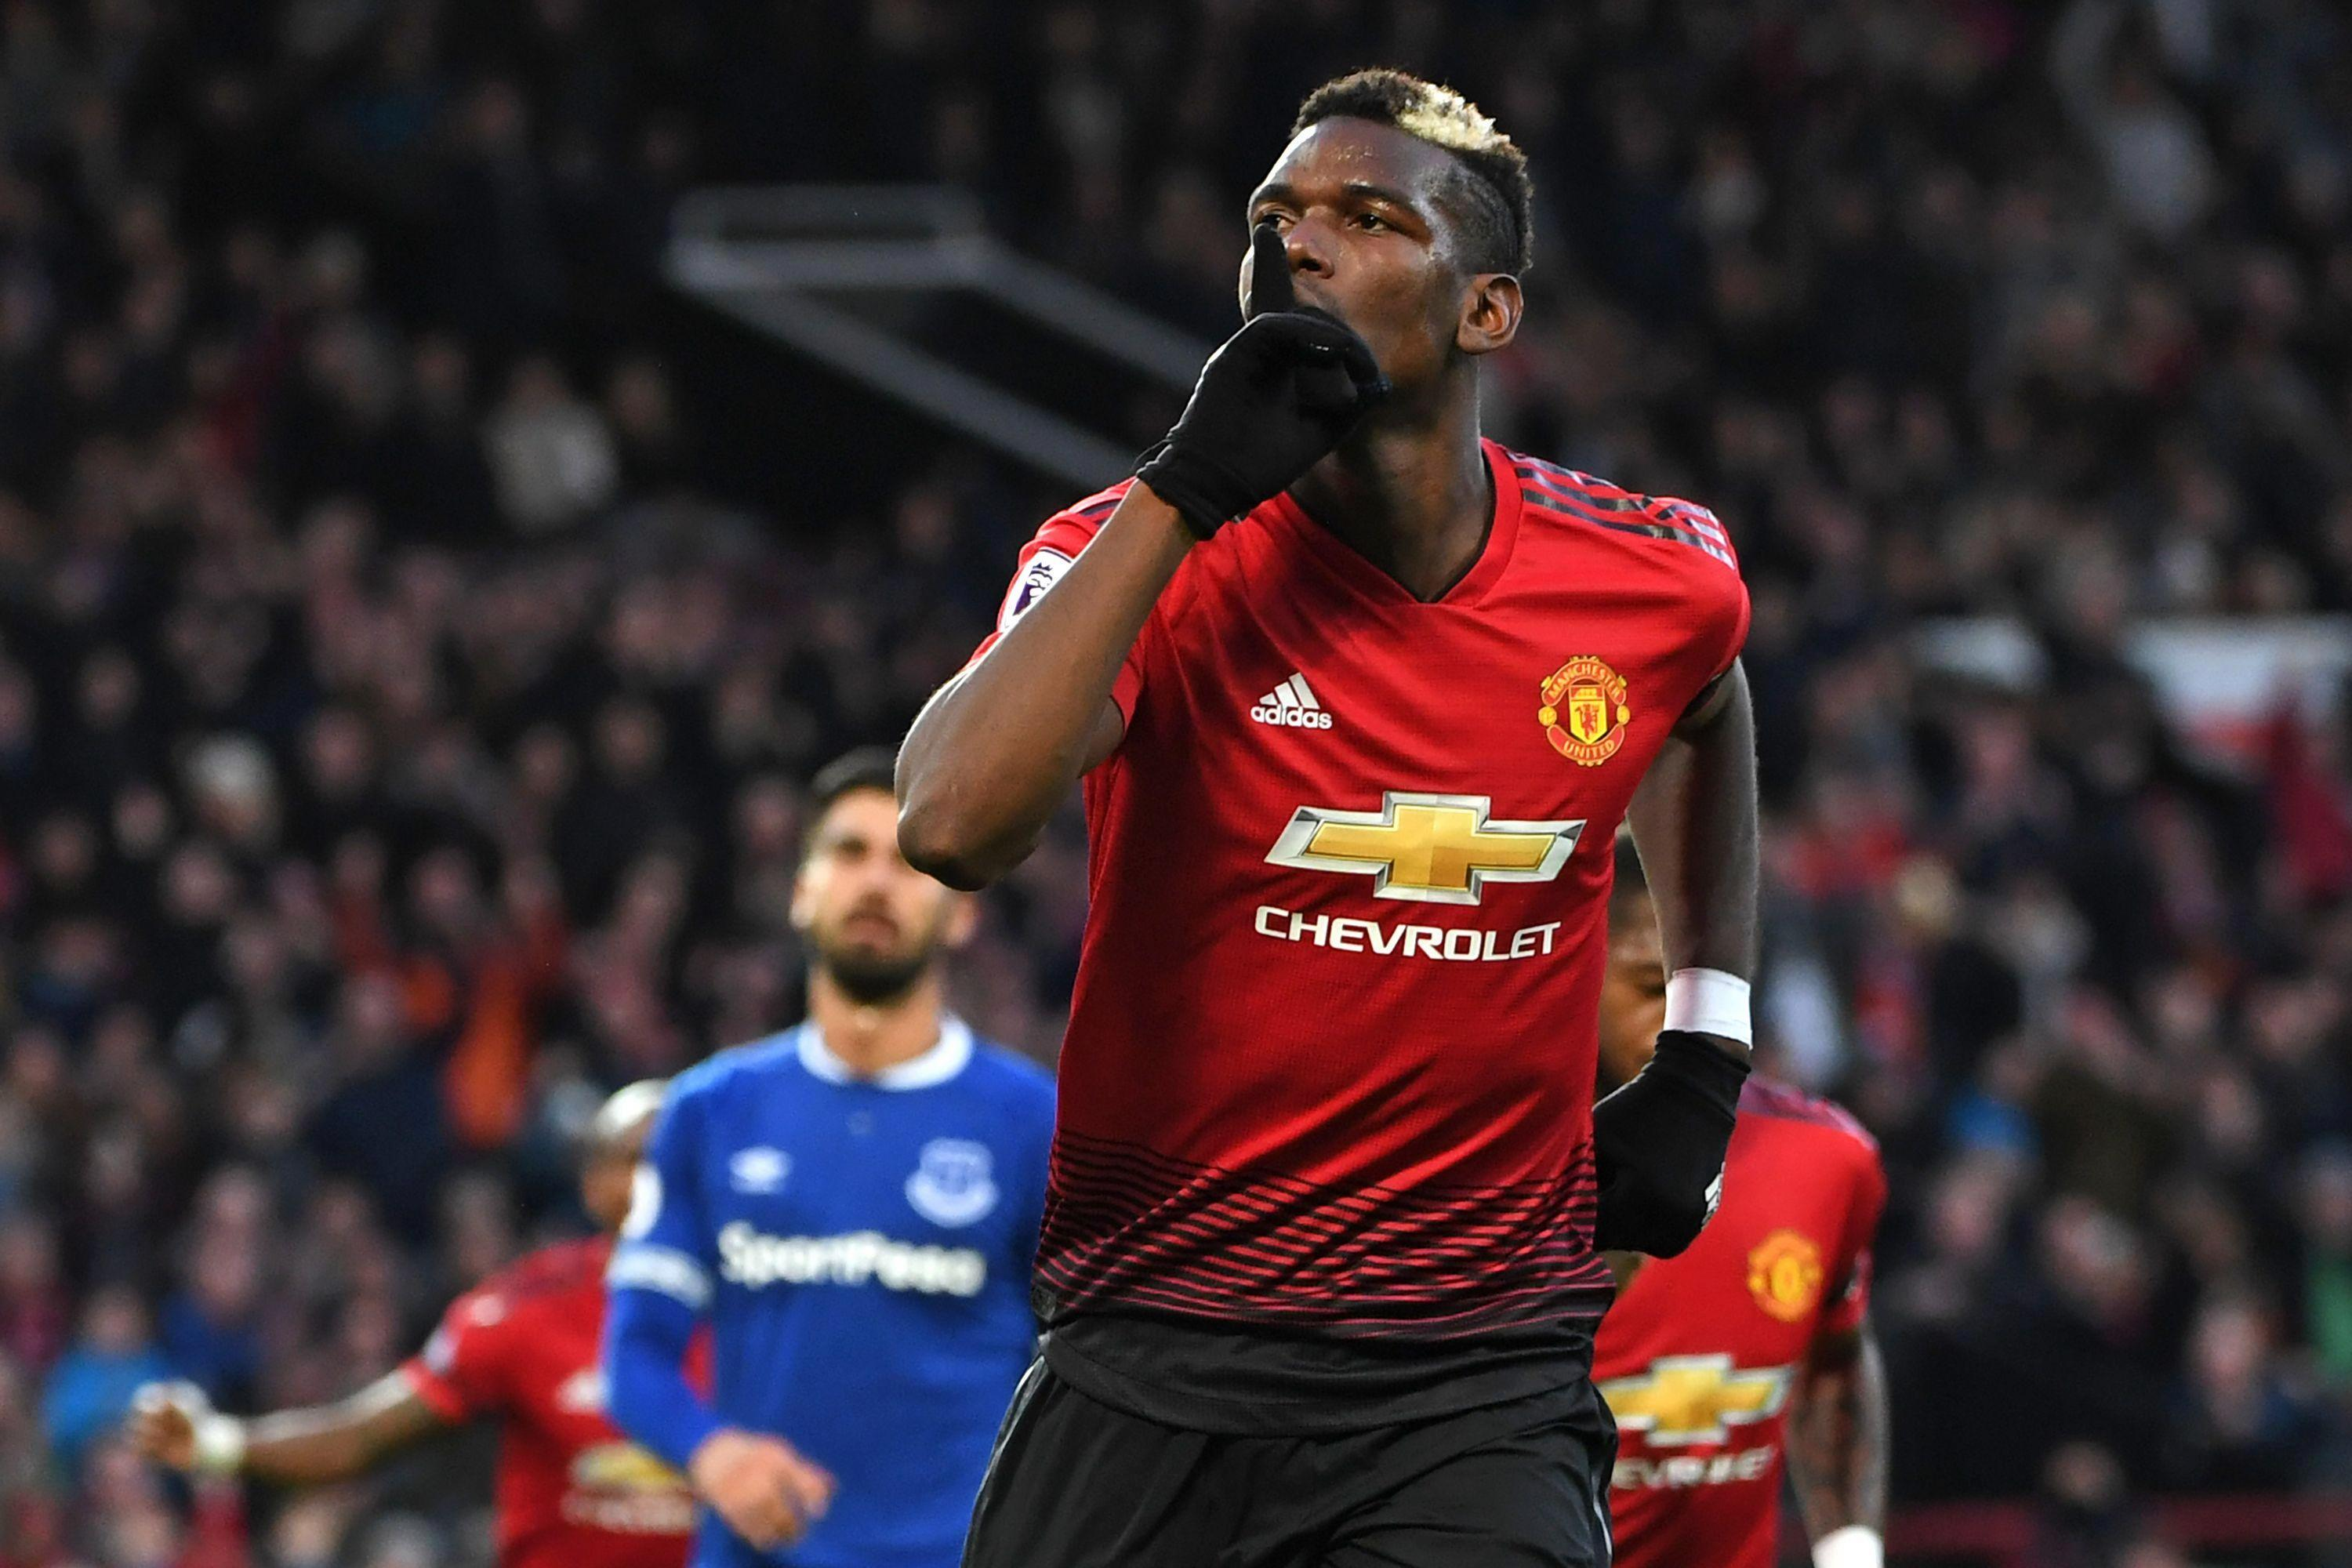 Paul Pogba only Man Utd star to make Uefa's 50-man Team of the Year Shortlist despite rift with Jose Mourinho